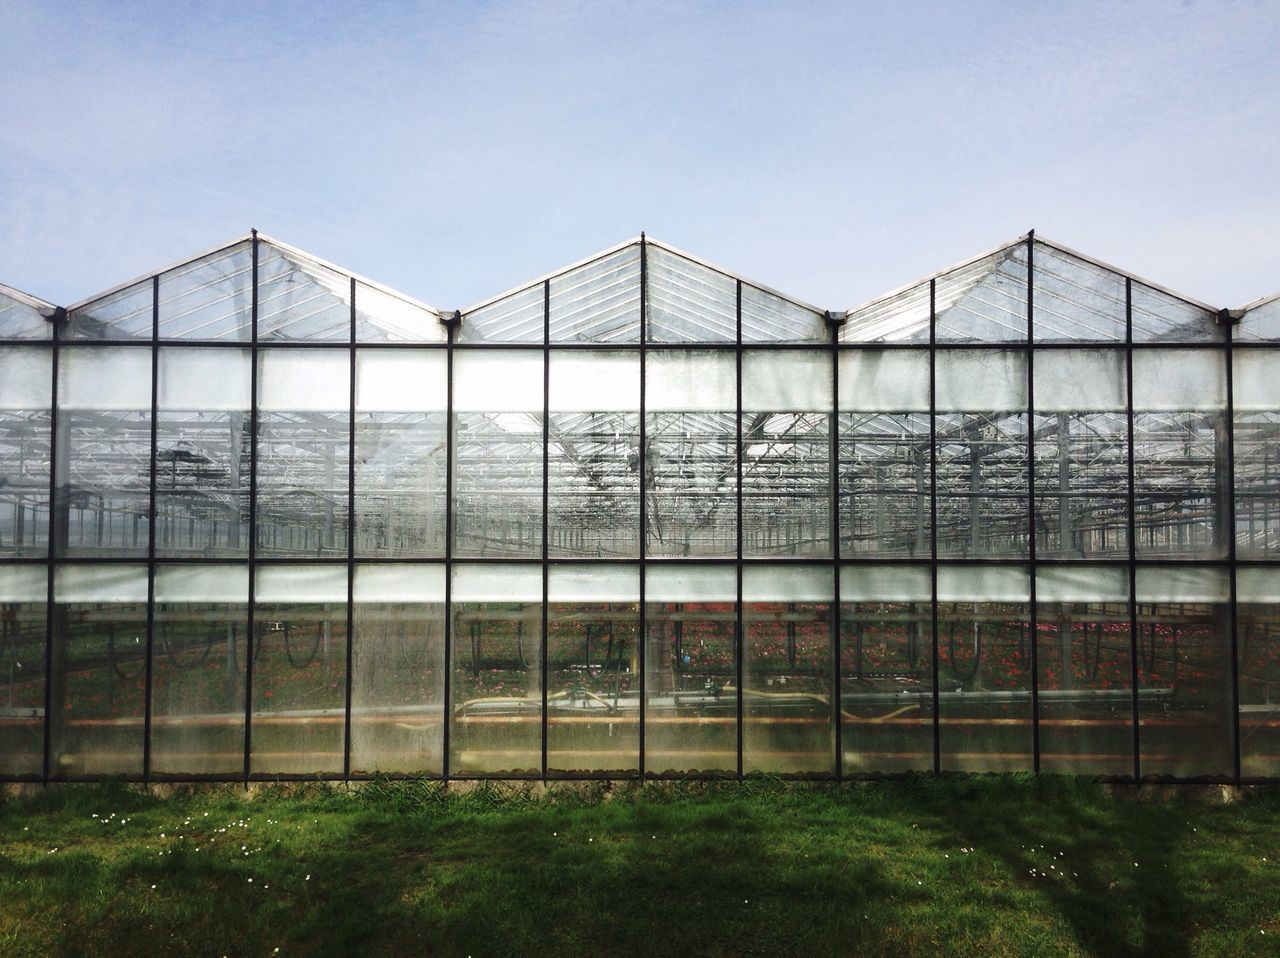 Low Angle View Of Greenhouse